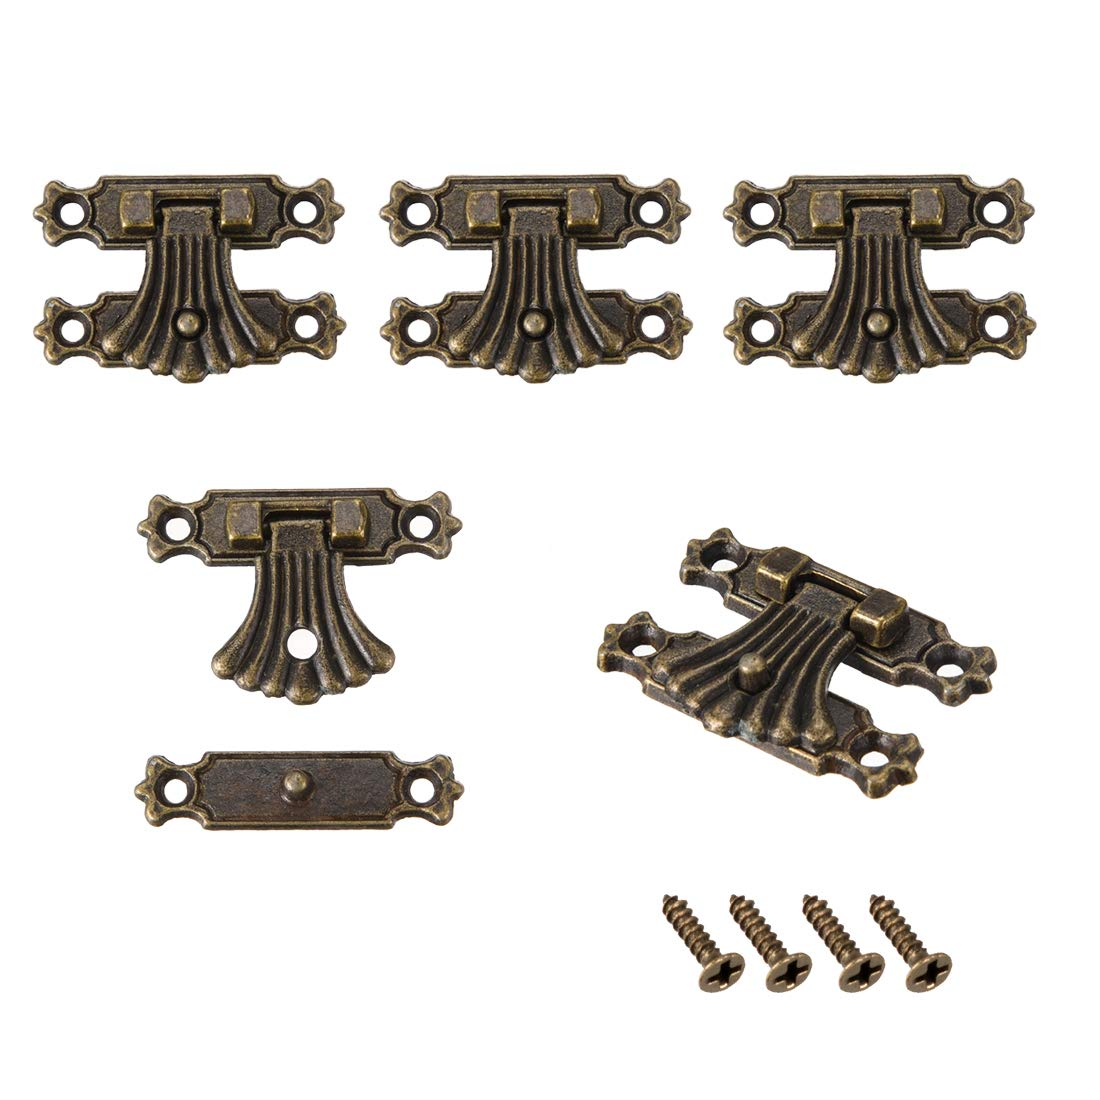 uxcell 2 Sets Wood Case Chest Box Rectangle Clasp Closure Hasp Latches Bronze Tone 37 x 27mm